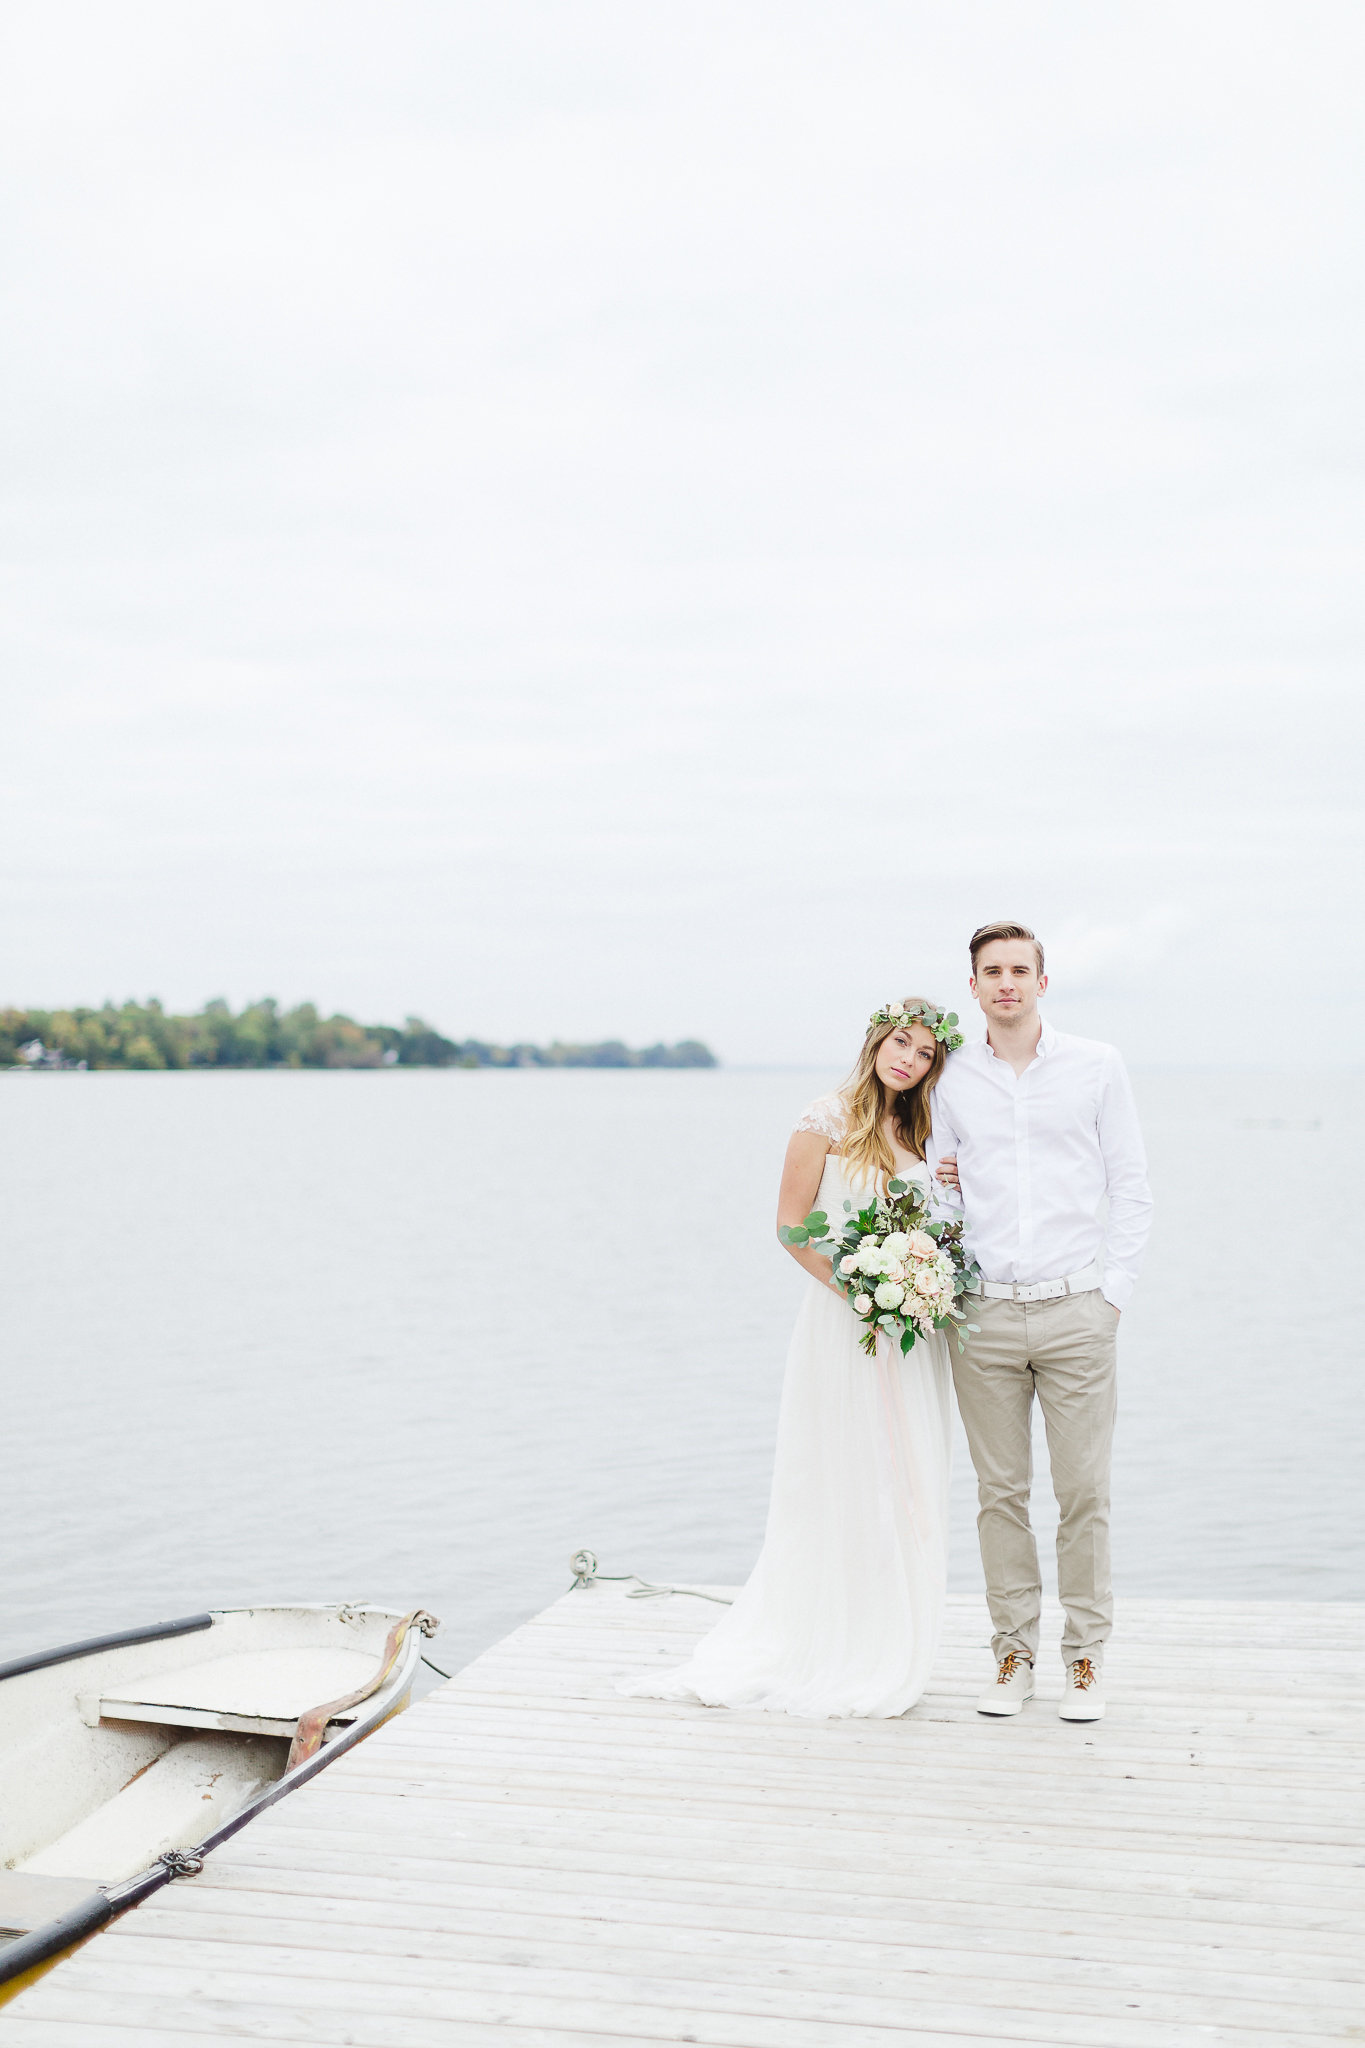 photographe-mariage-montreal-west-island-lisa-renault-photographie-montreal-wedding-photographer-20